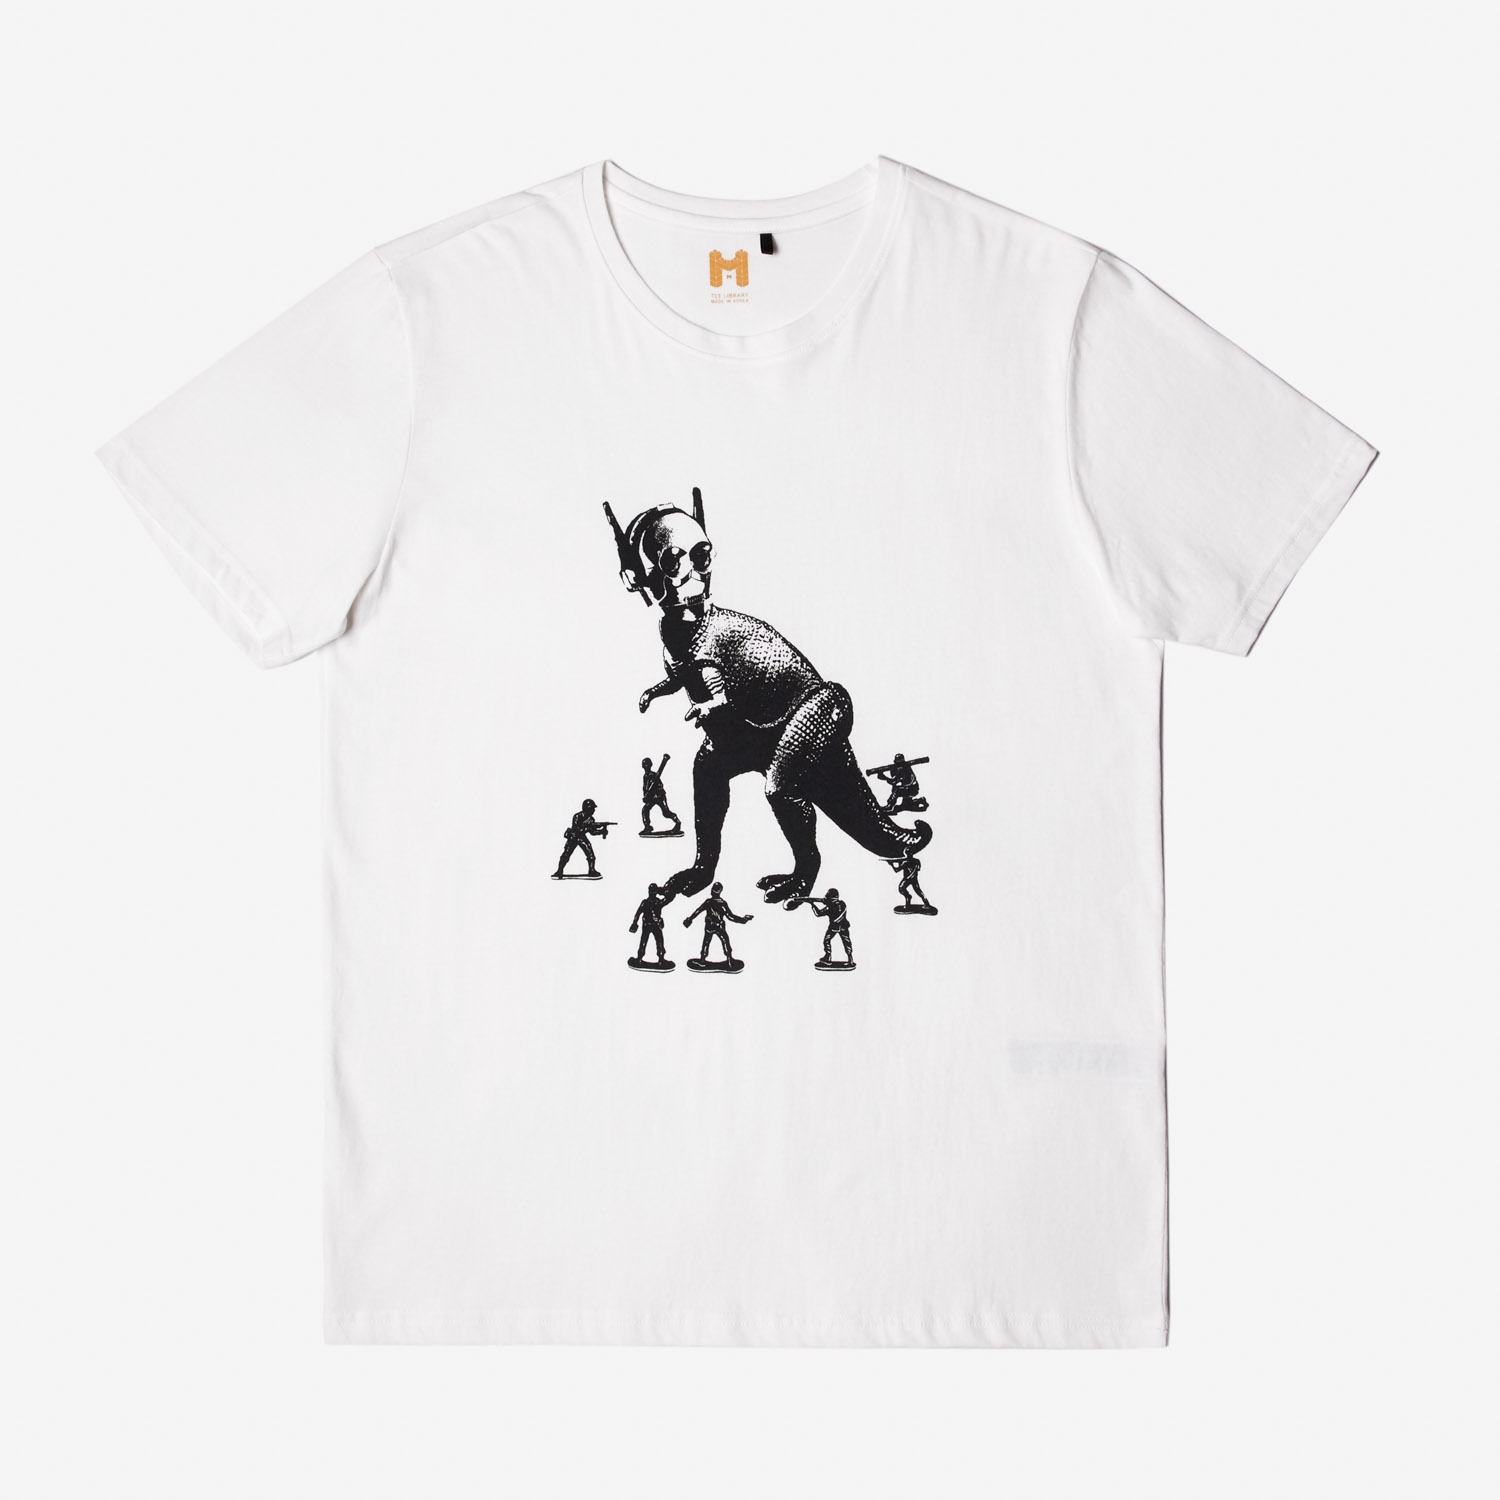 Tee Library